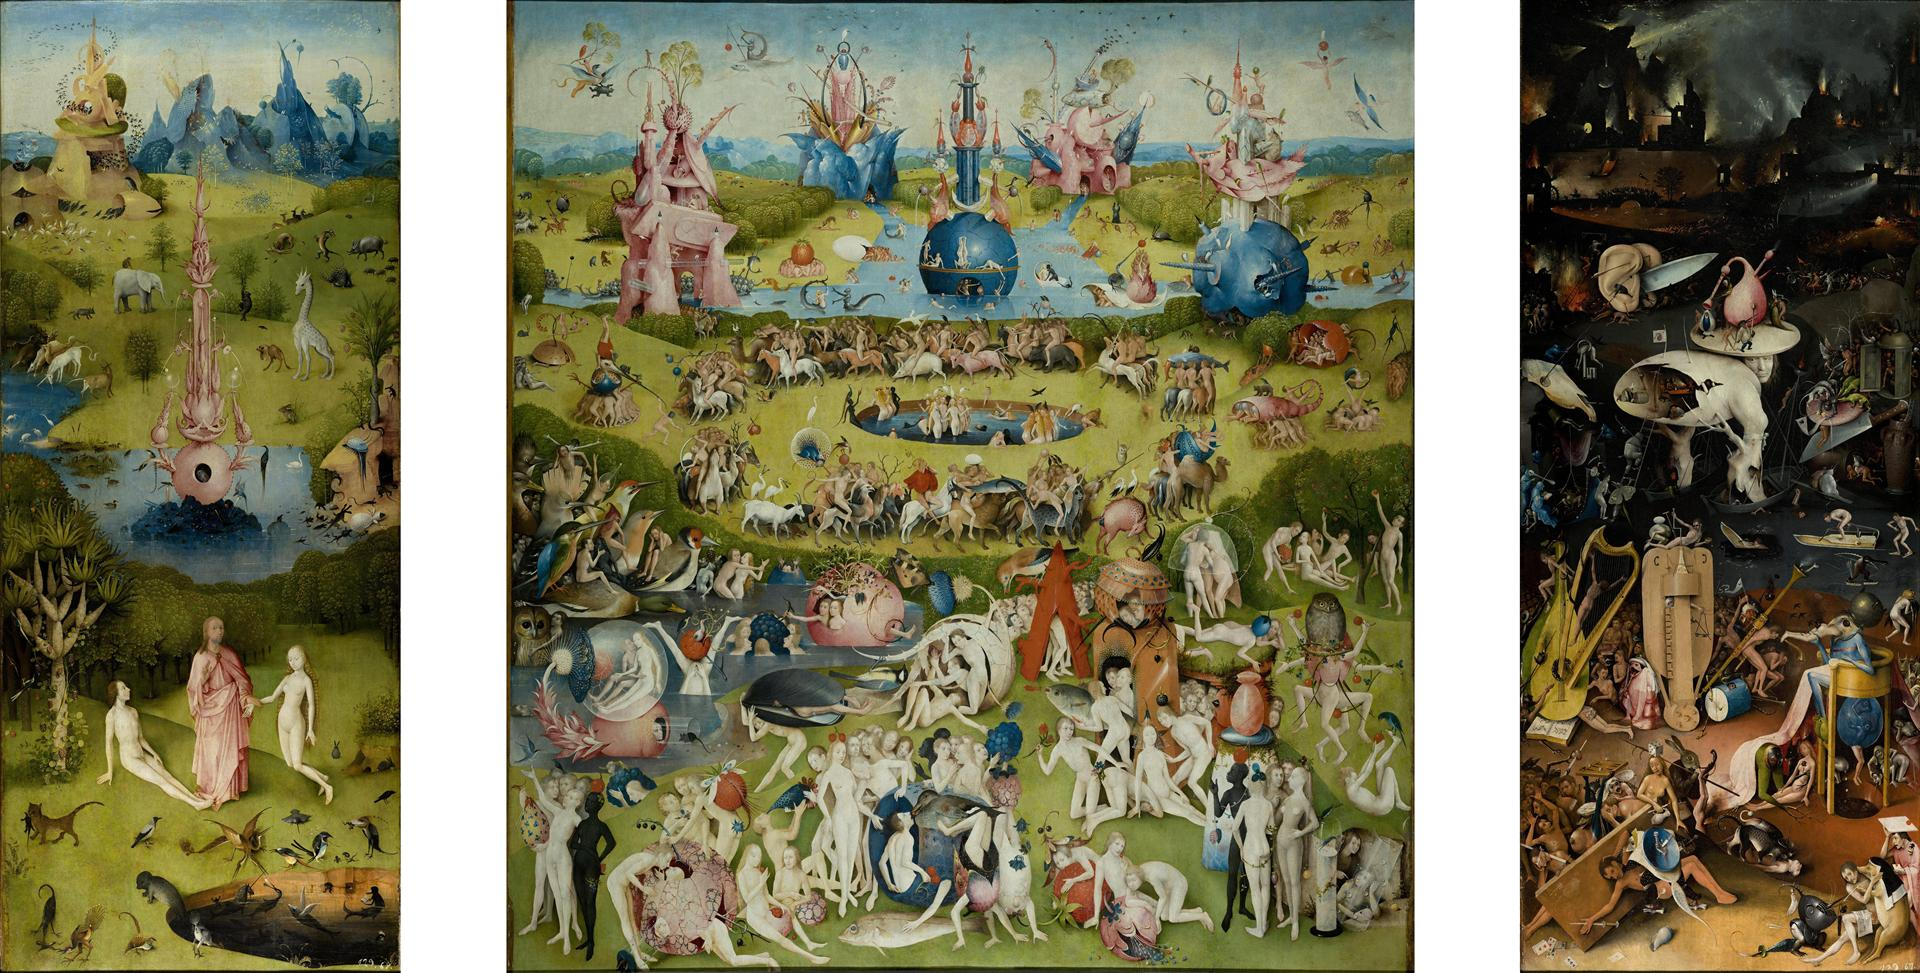 http://uploads4.wikipaintings.org/images/hieronymus-bosch/the-garden-of-earthly-delights-1515-7.jpg!HD.jpg